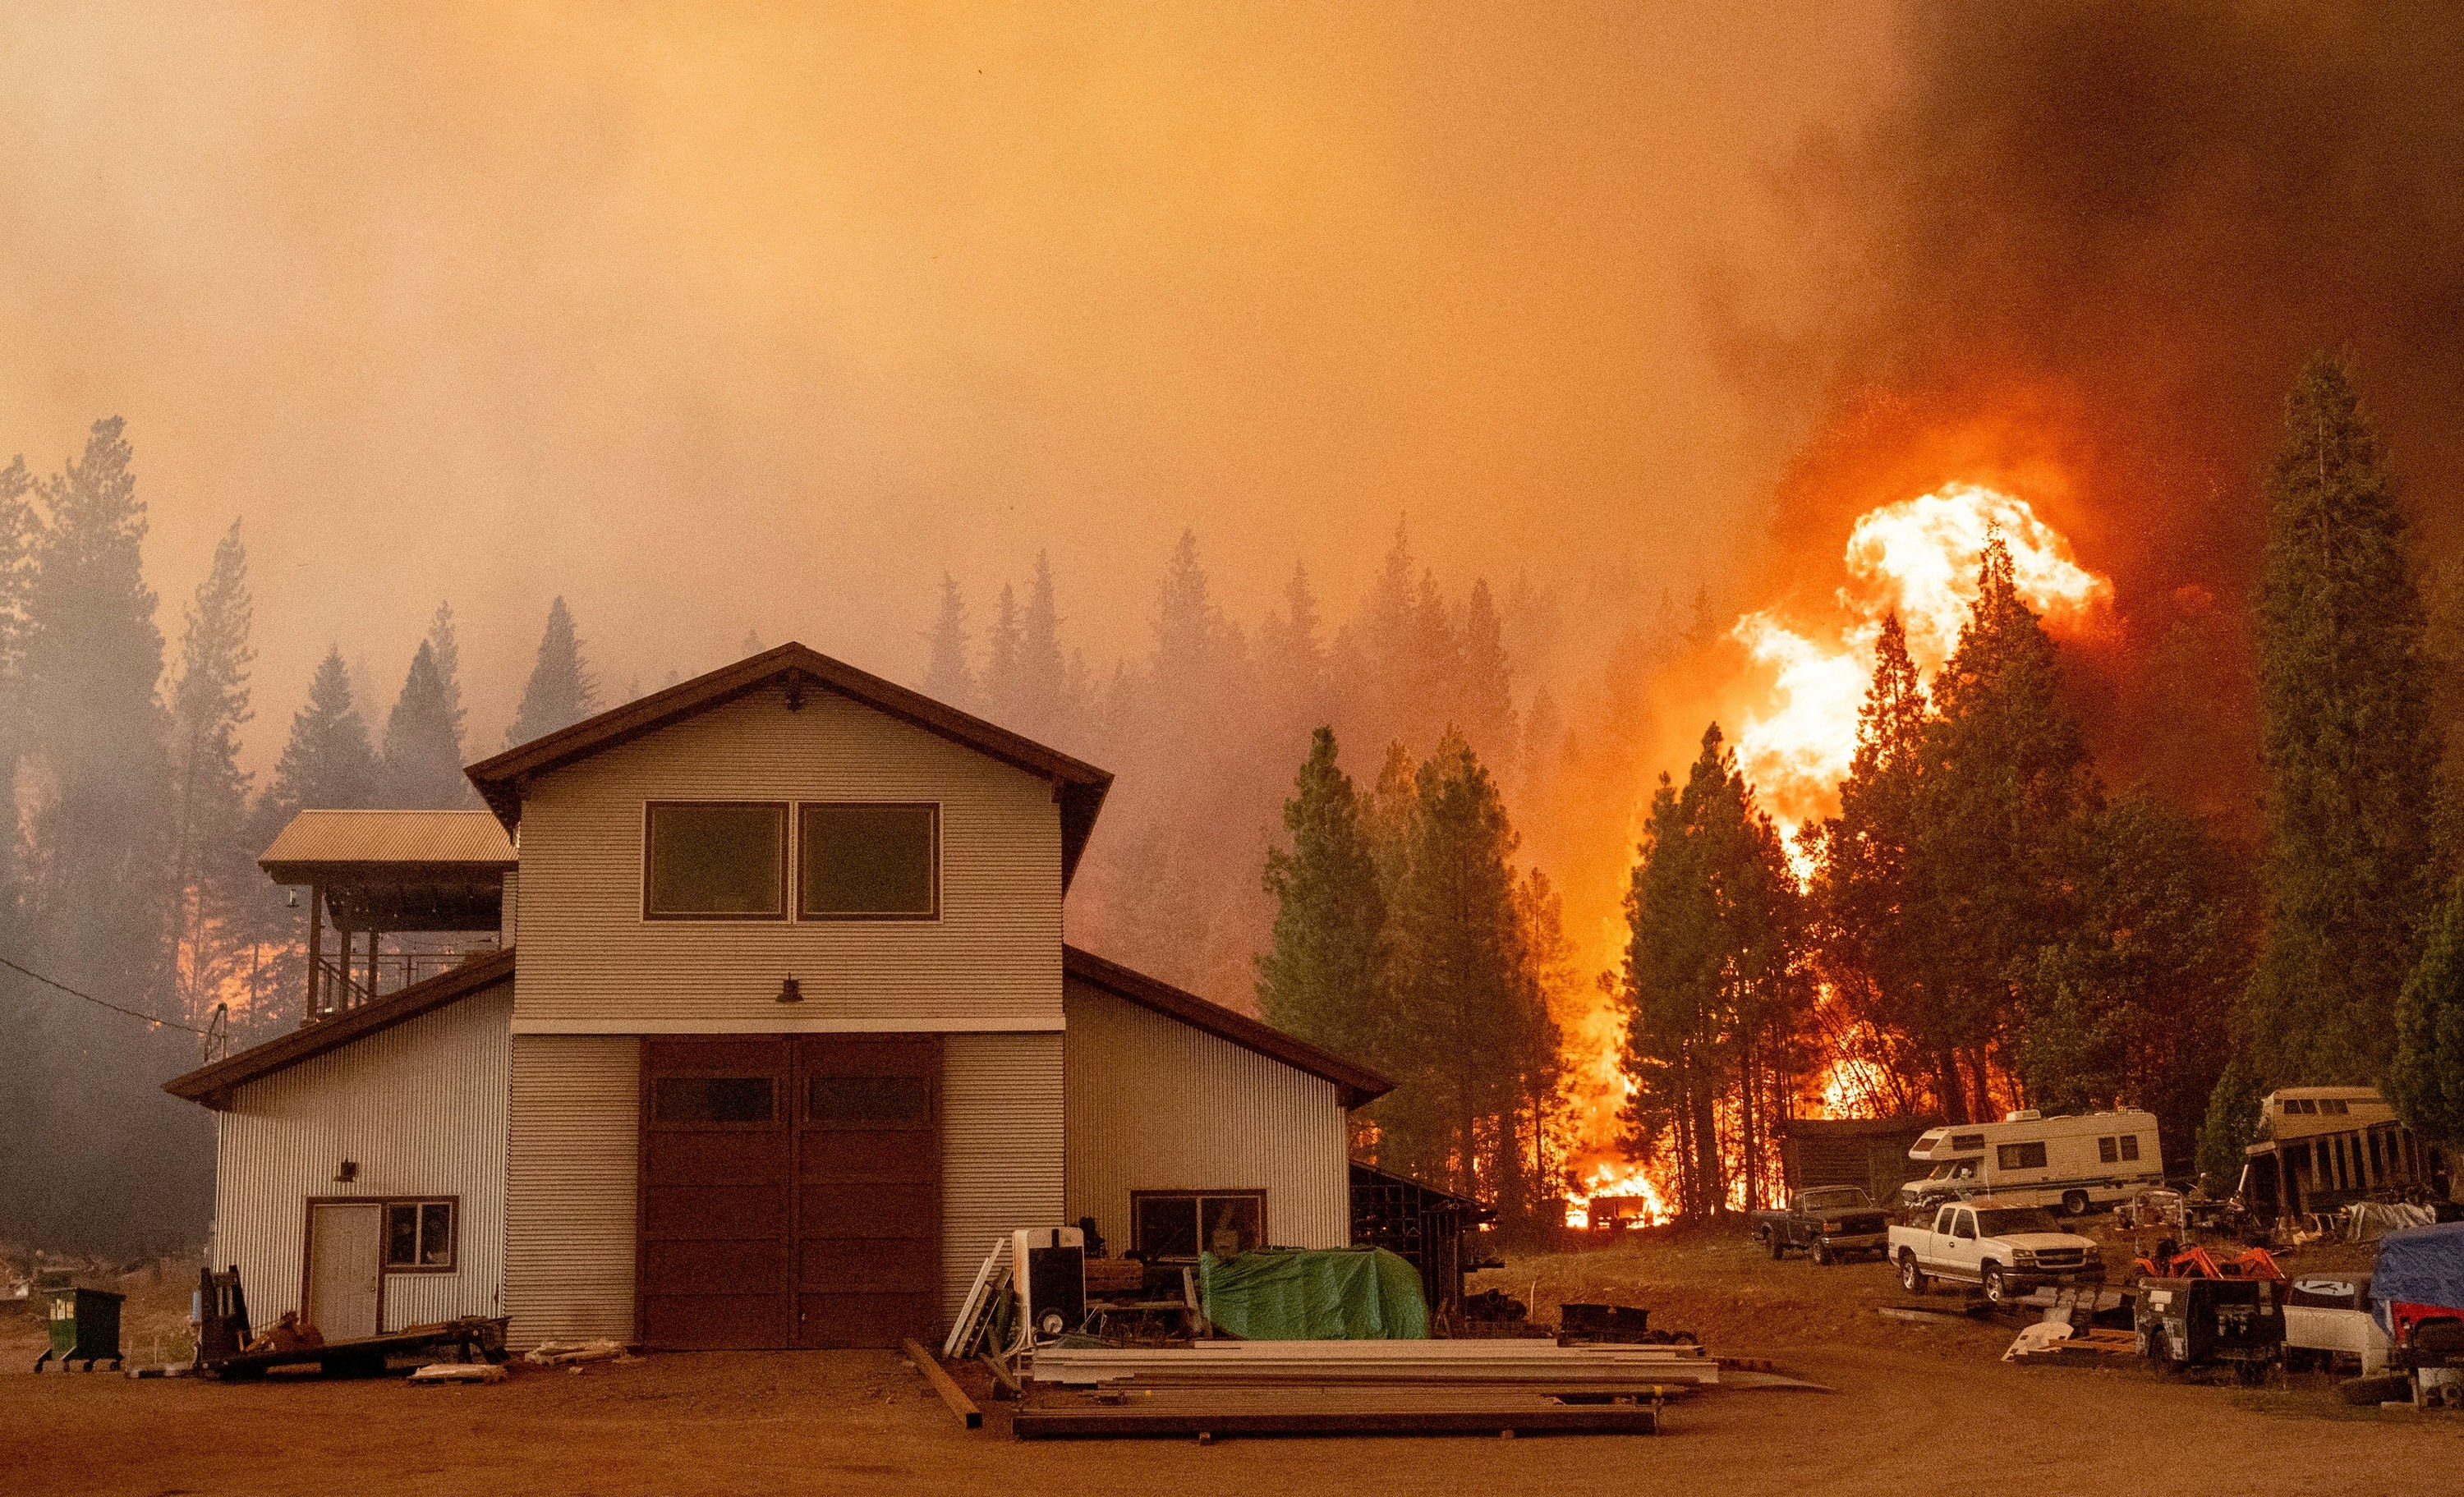 A two-story home with trucks and recreational vehicles parked outside is surrounded by a forest fire